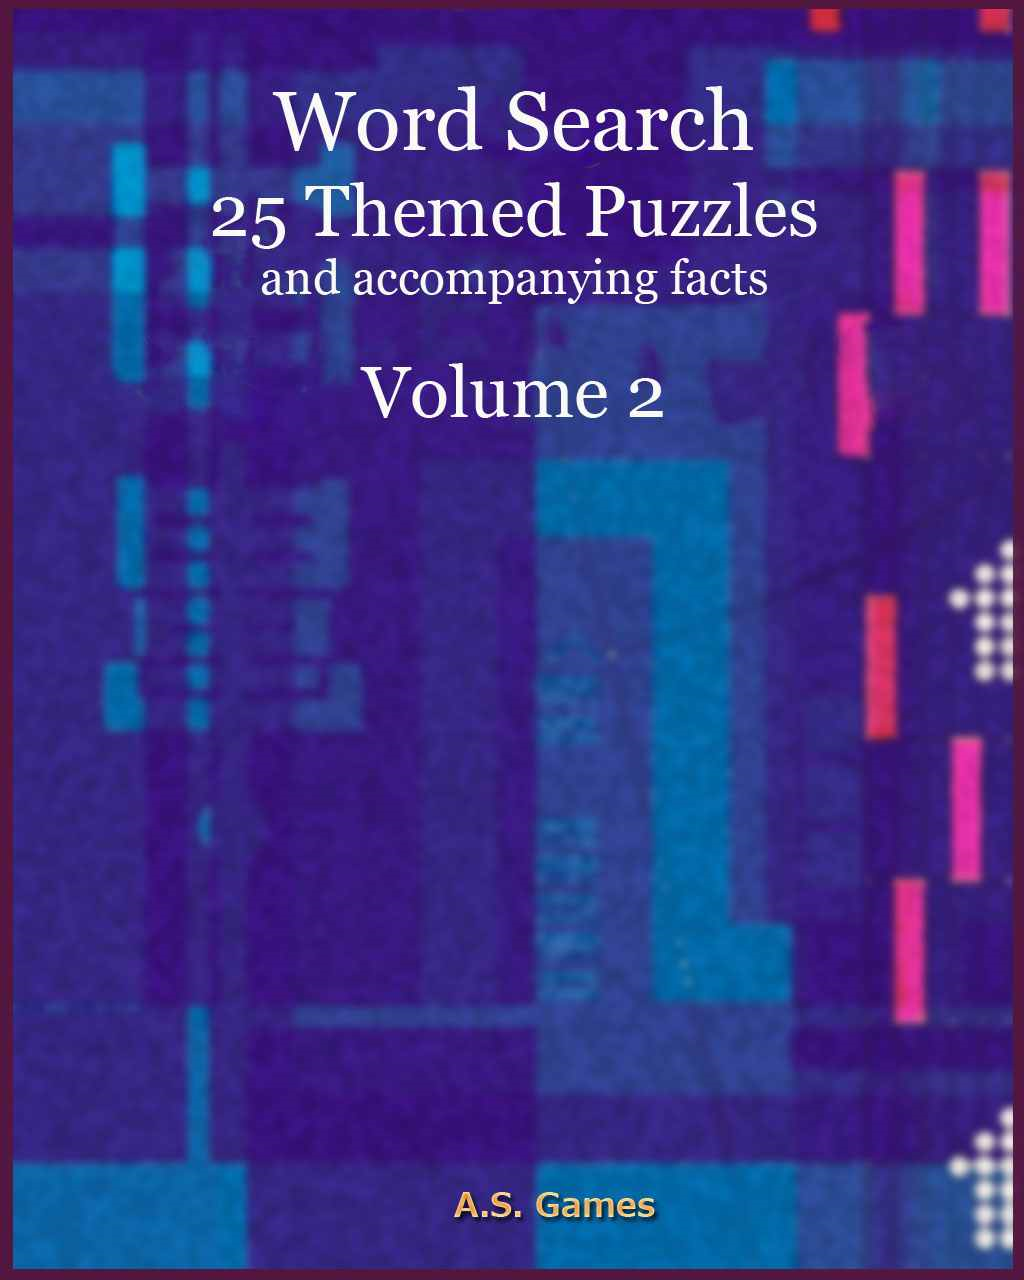 Word Search: 25 Themed Puzzles (and accompanying facts) Volume 2 By: A.S. Games